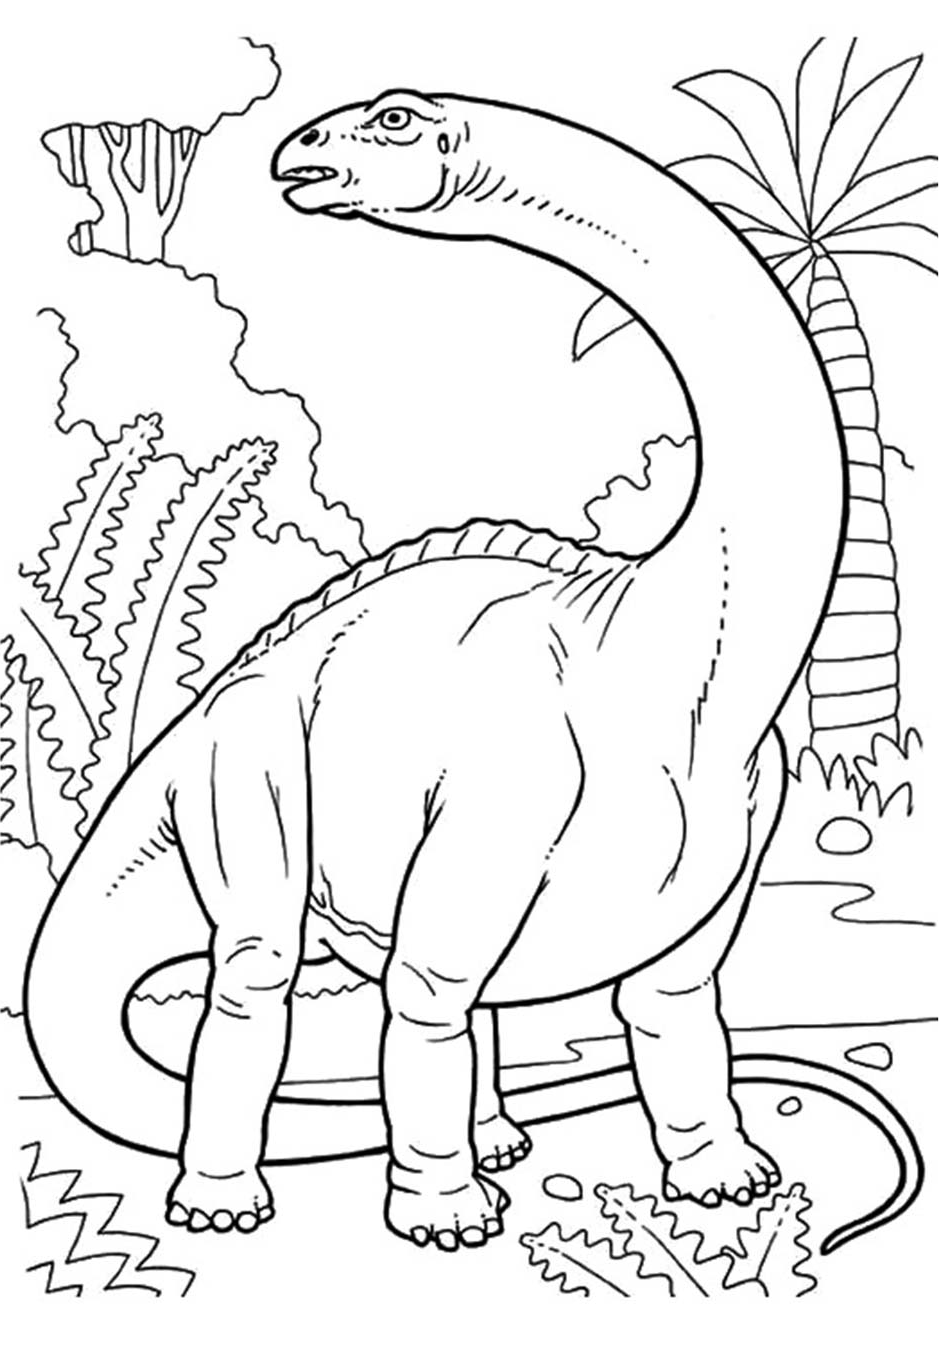 Free Printable Dinosaur Coloring Pages Plant Eating Dinosaur Herbivores